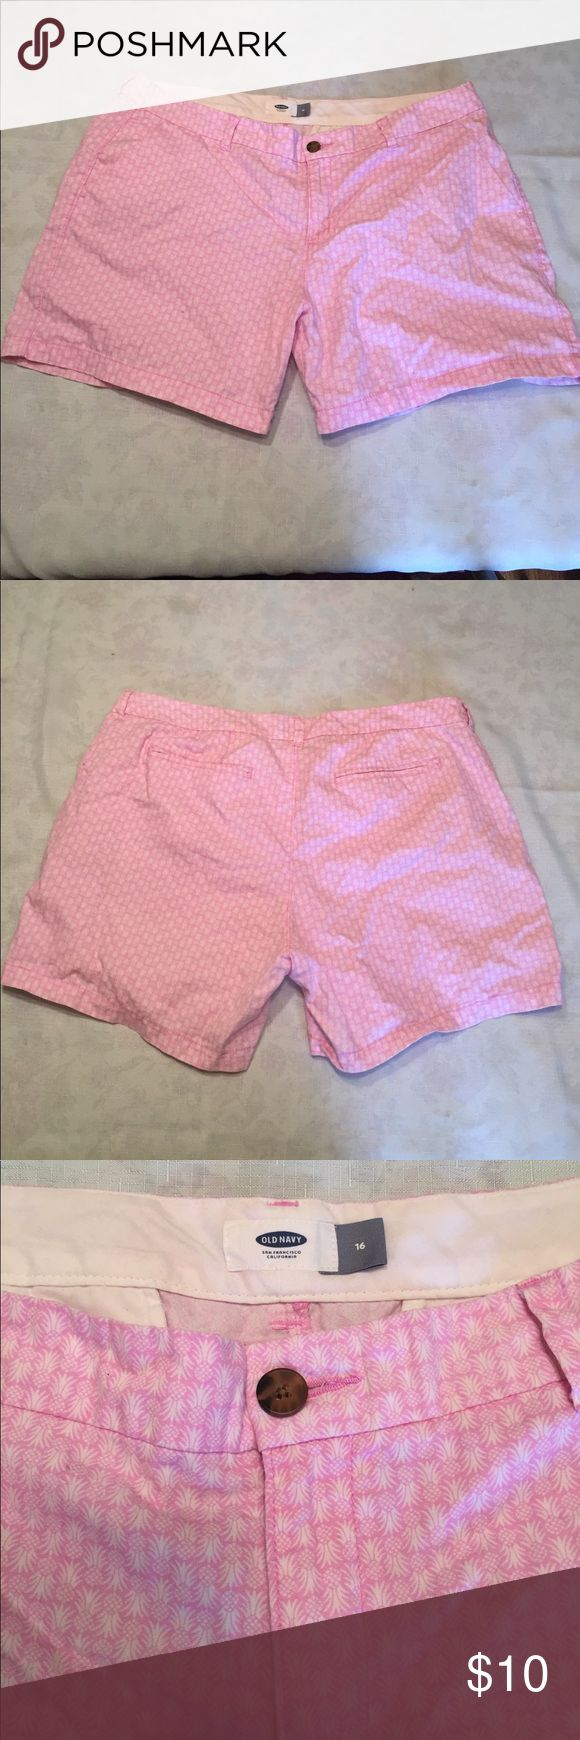 Women's pink pineapple patterned chino shorts Women's size 16 pink pineapple patterned shorts. Super cute and comfortable! Mid-length, but can be rolled. Lightly worn. Perfect for the Summer or if you need to add a little color to your outfit! Old Navy Shorts